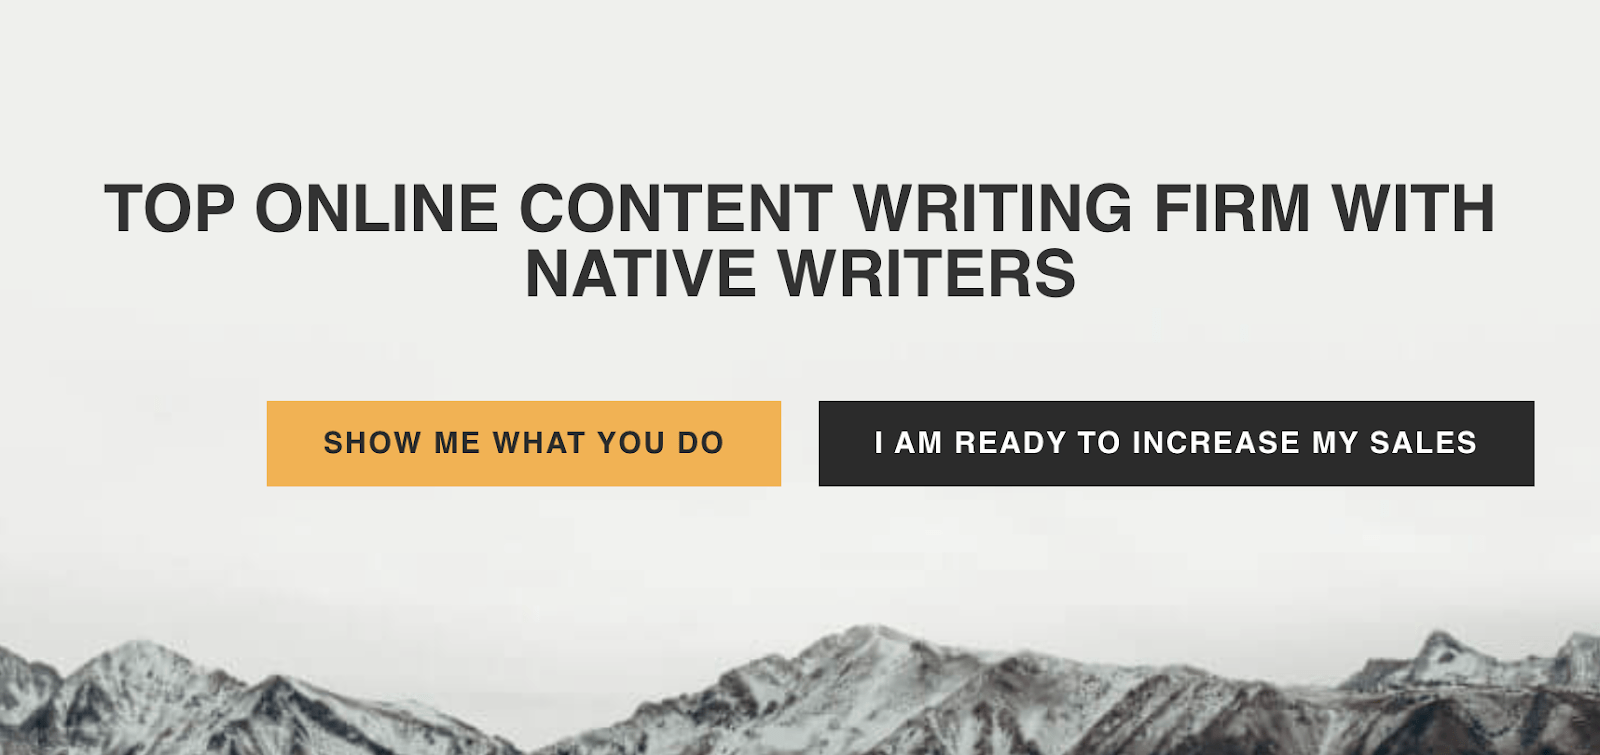 """Top online content writing firm that has two CTA's. """"Show me what you do"""" and """"I'm ready to increase my sales"""""""